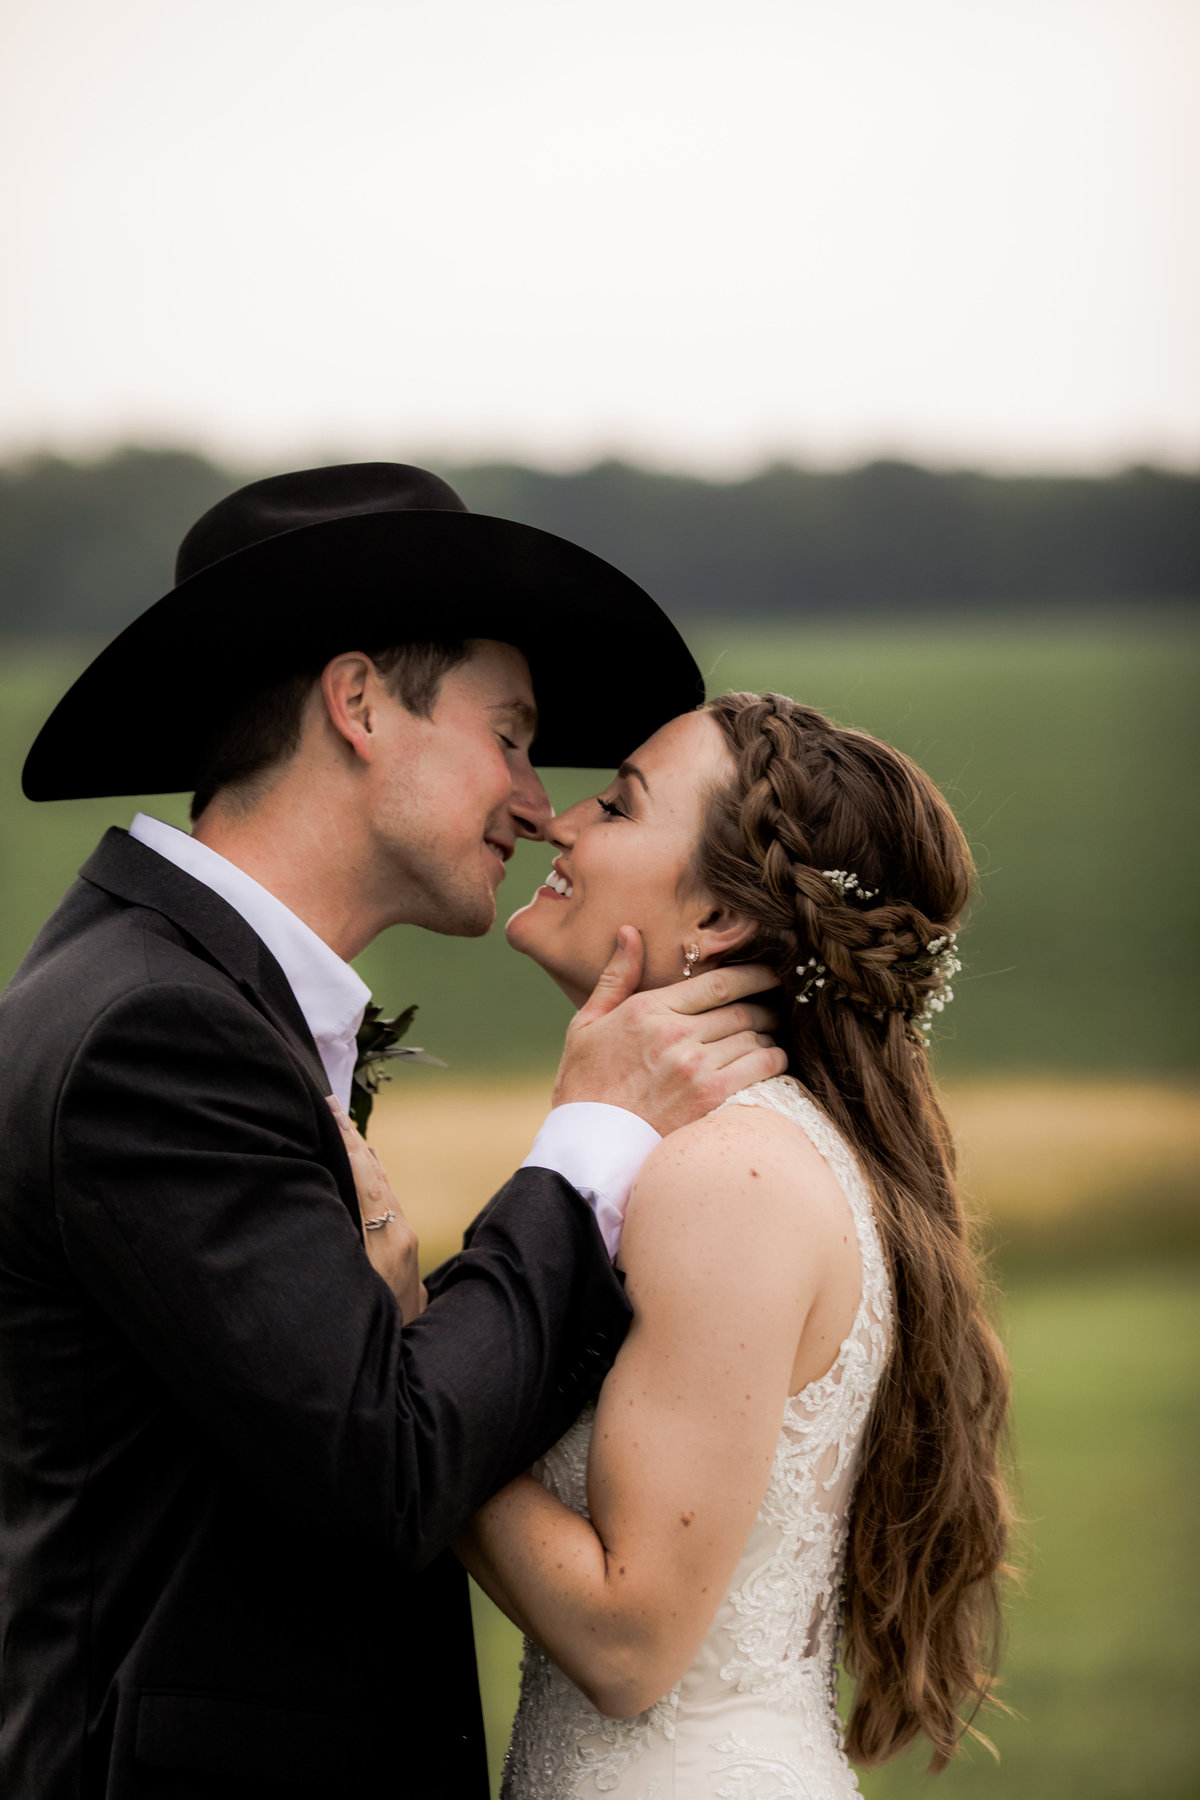 Nsshville Bride - Nashville Brides - The Hayloft Weddings - Tennessee Brides - Kentucky Brides - Southern Brides - Cowboys Wife - Cowboys Bride - Ranch Weddings - Cowboys and Belles065